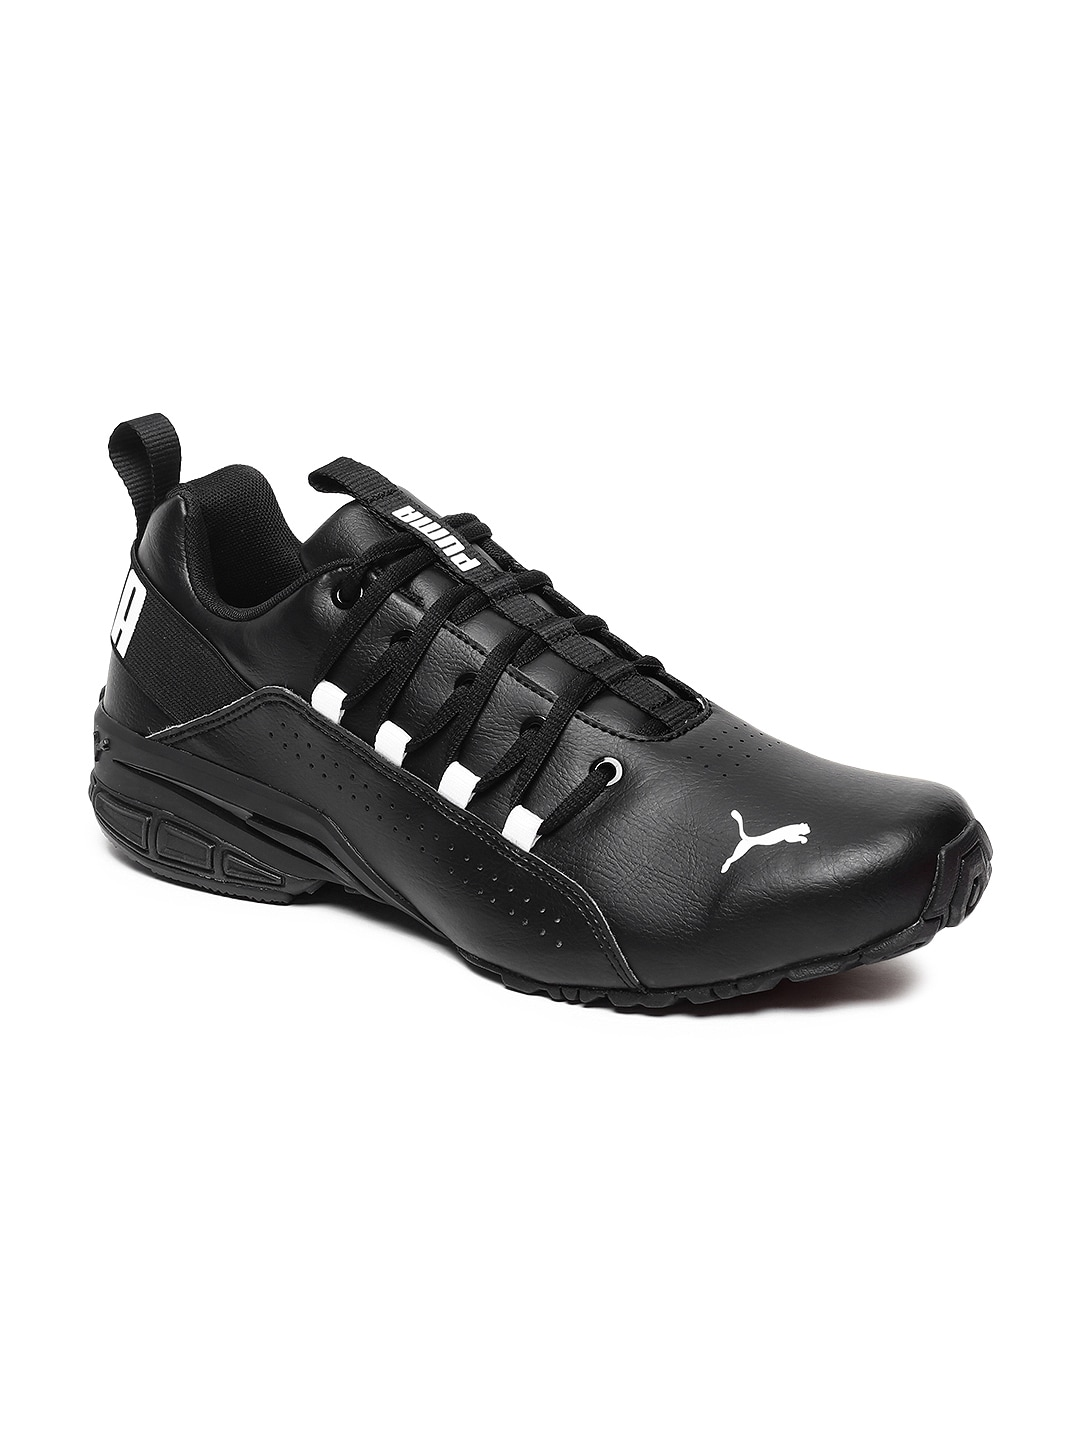 low priced 4b84b d7870 Puma Running Shoes For Men - Buy Puma Running Shoes For Men online in India